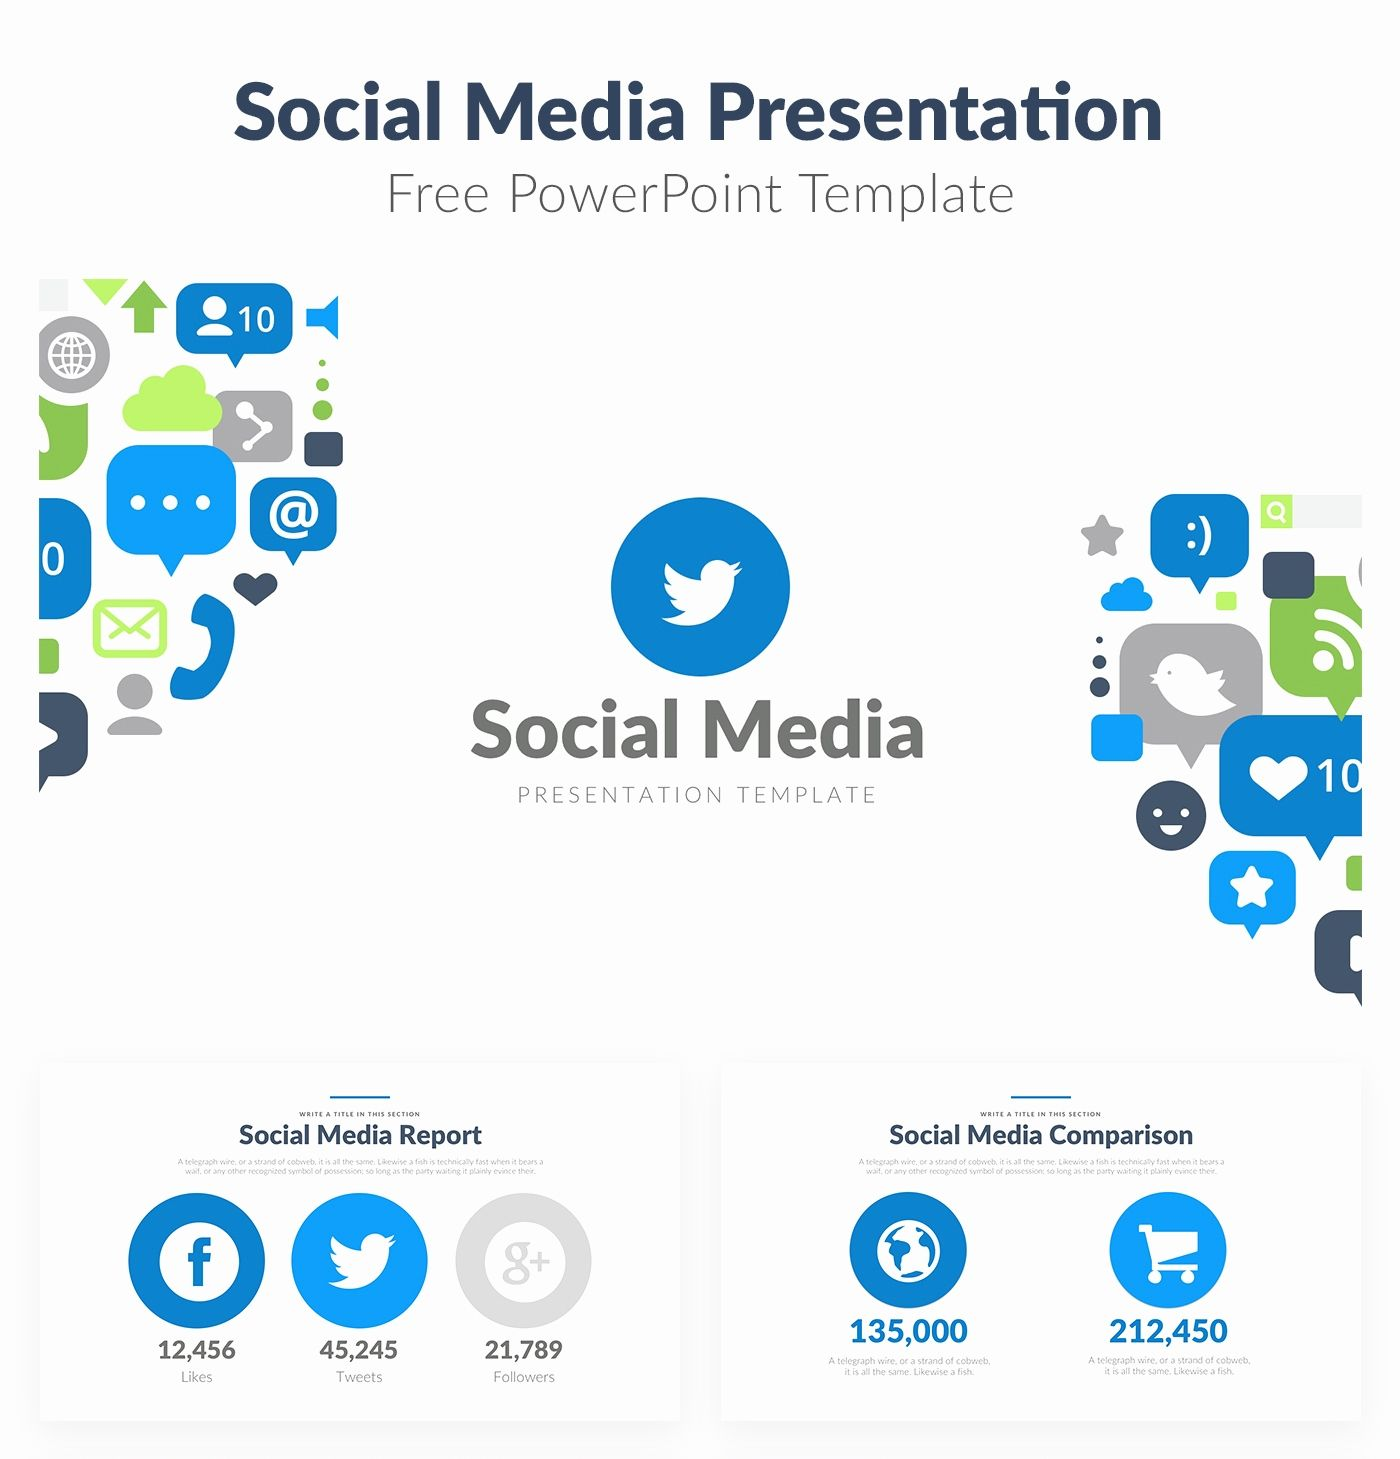 Powerpoint templates social media images powerpoint news to go 2 powerpoint templates social media images powerpoint toneelgroepblik Choice Image